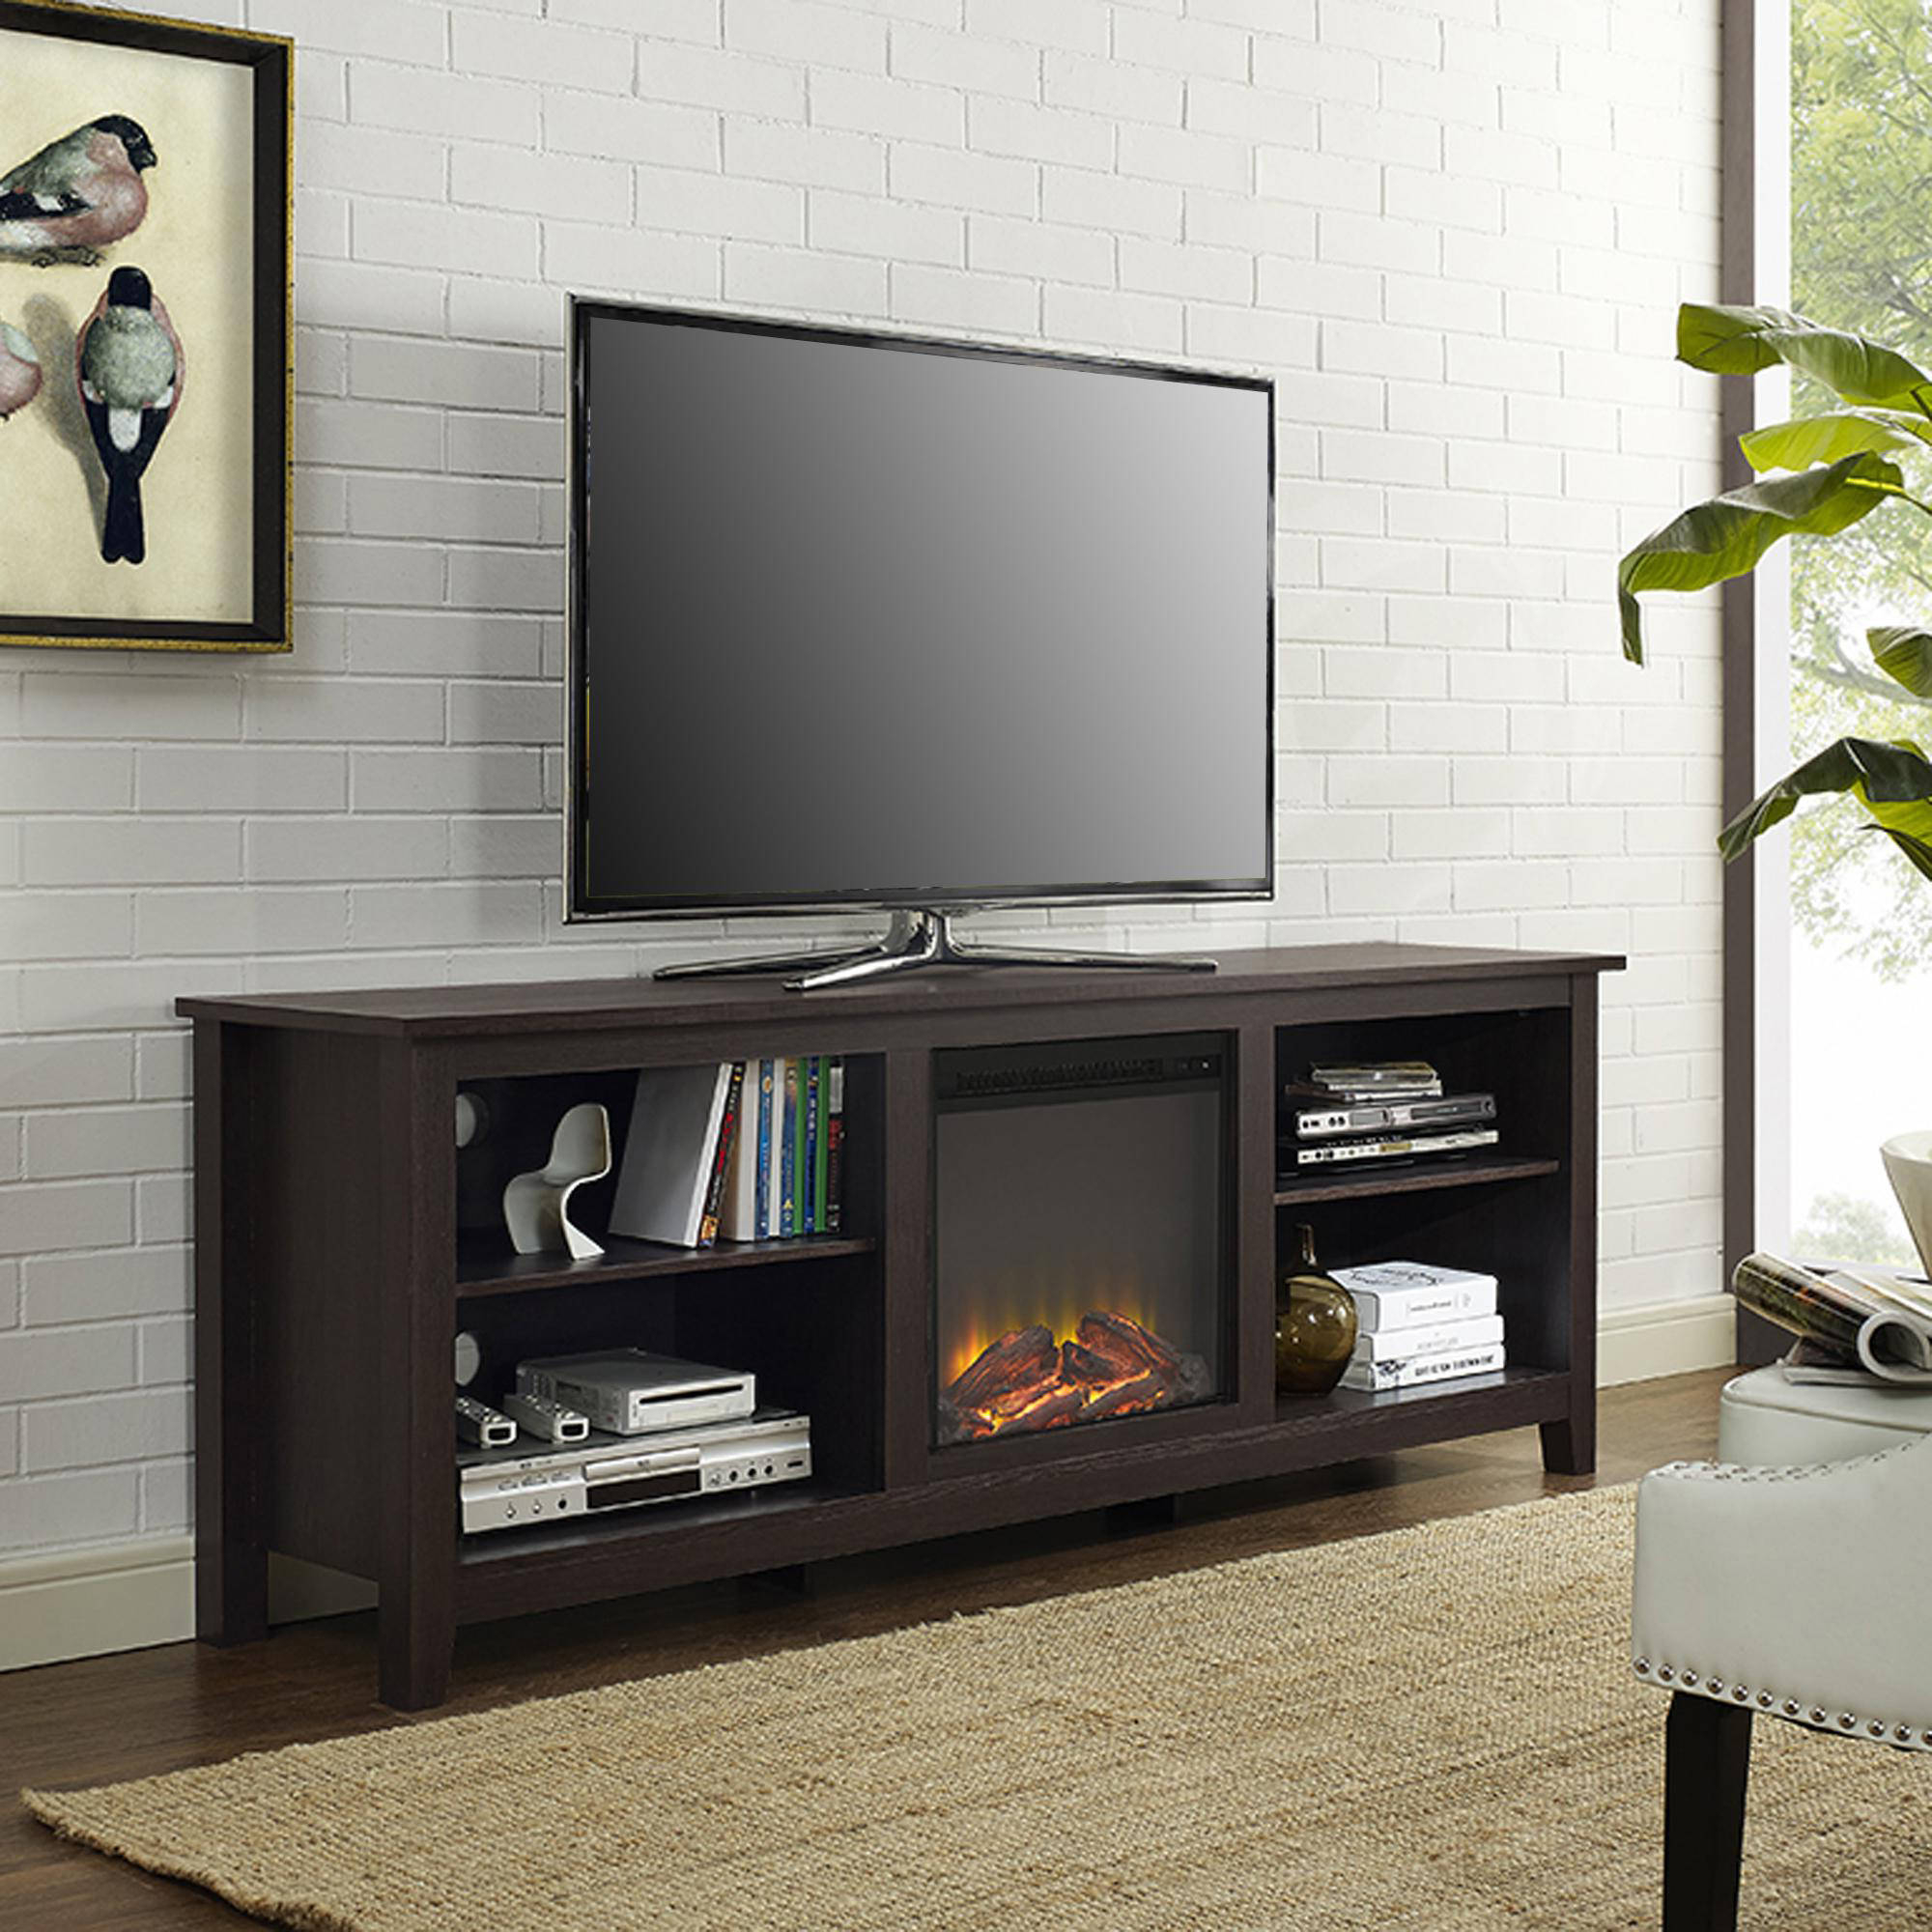 Popular Tv Stands & Entertainment Centers – Walmart Throughout Light Cherry Tv Stands (Gallery 19 of 20)